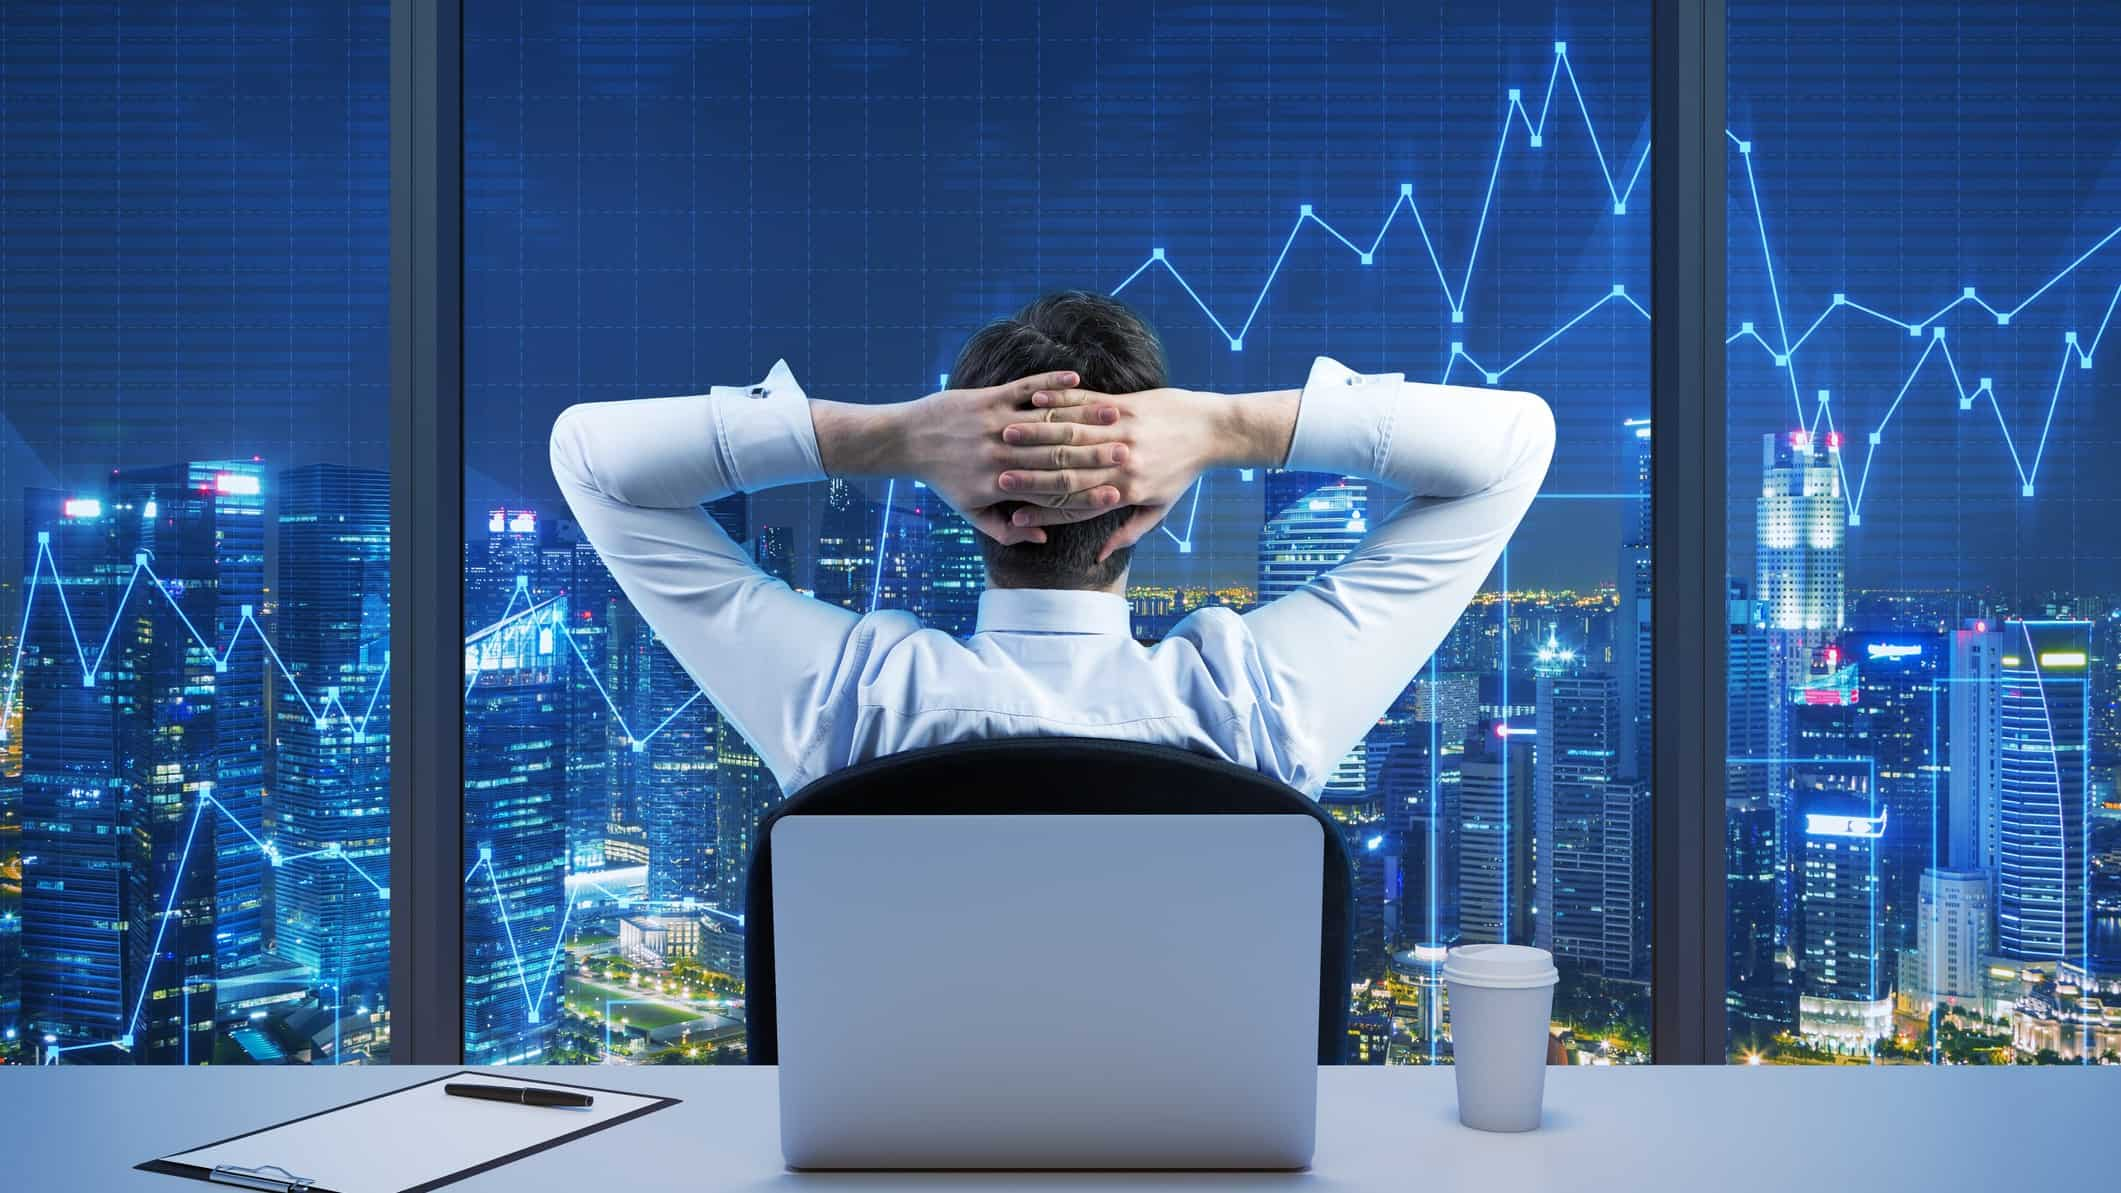 Business man at desk looking out window with his arms behind his head at a view of the city and stock trends overlay